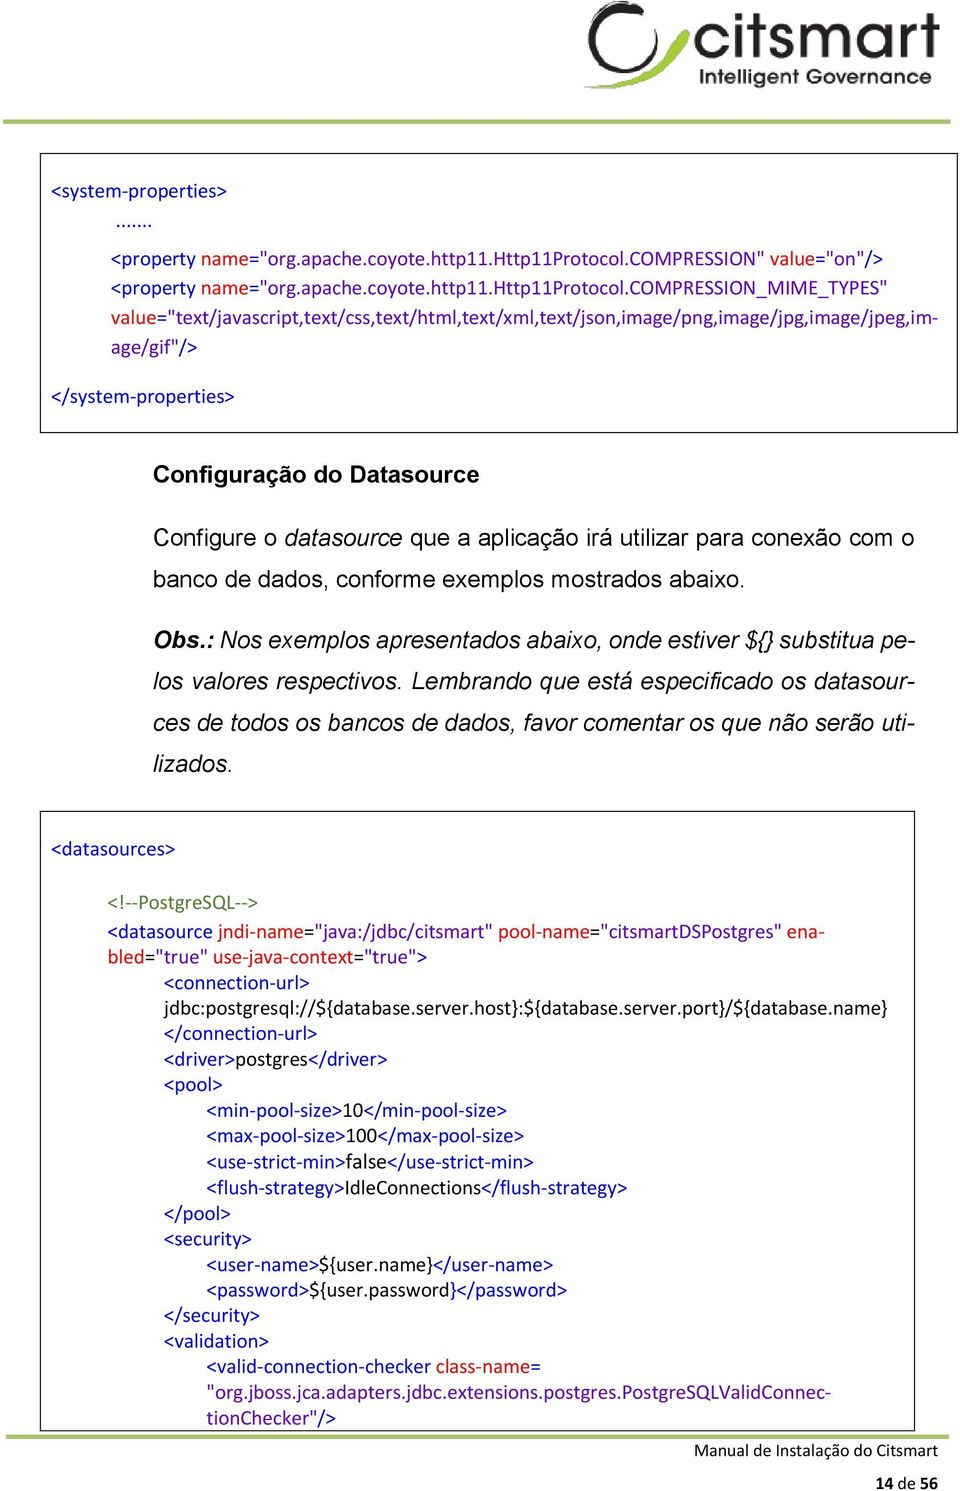 "compression_mime_types"" value=""text/javascript,text/css,text/html,text/xml,text/json,image/png,image/jpg,image/jpeg,image/gif""/> </system-properties> Configuração do Datasource Configure o datasource"